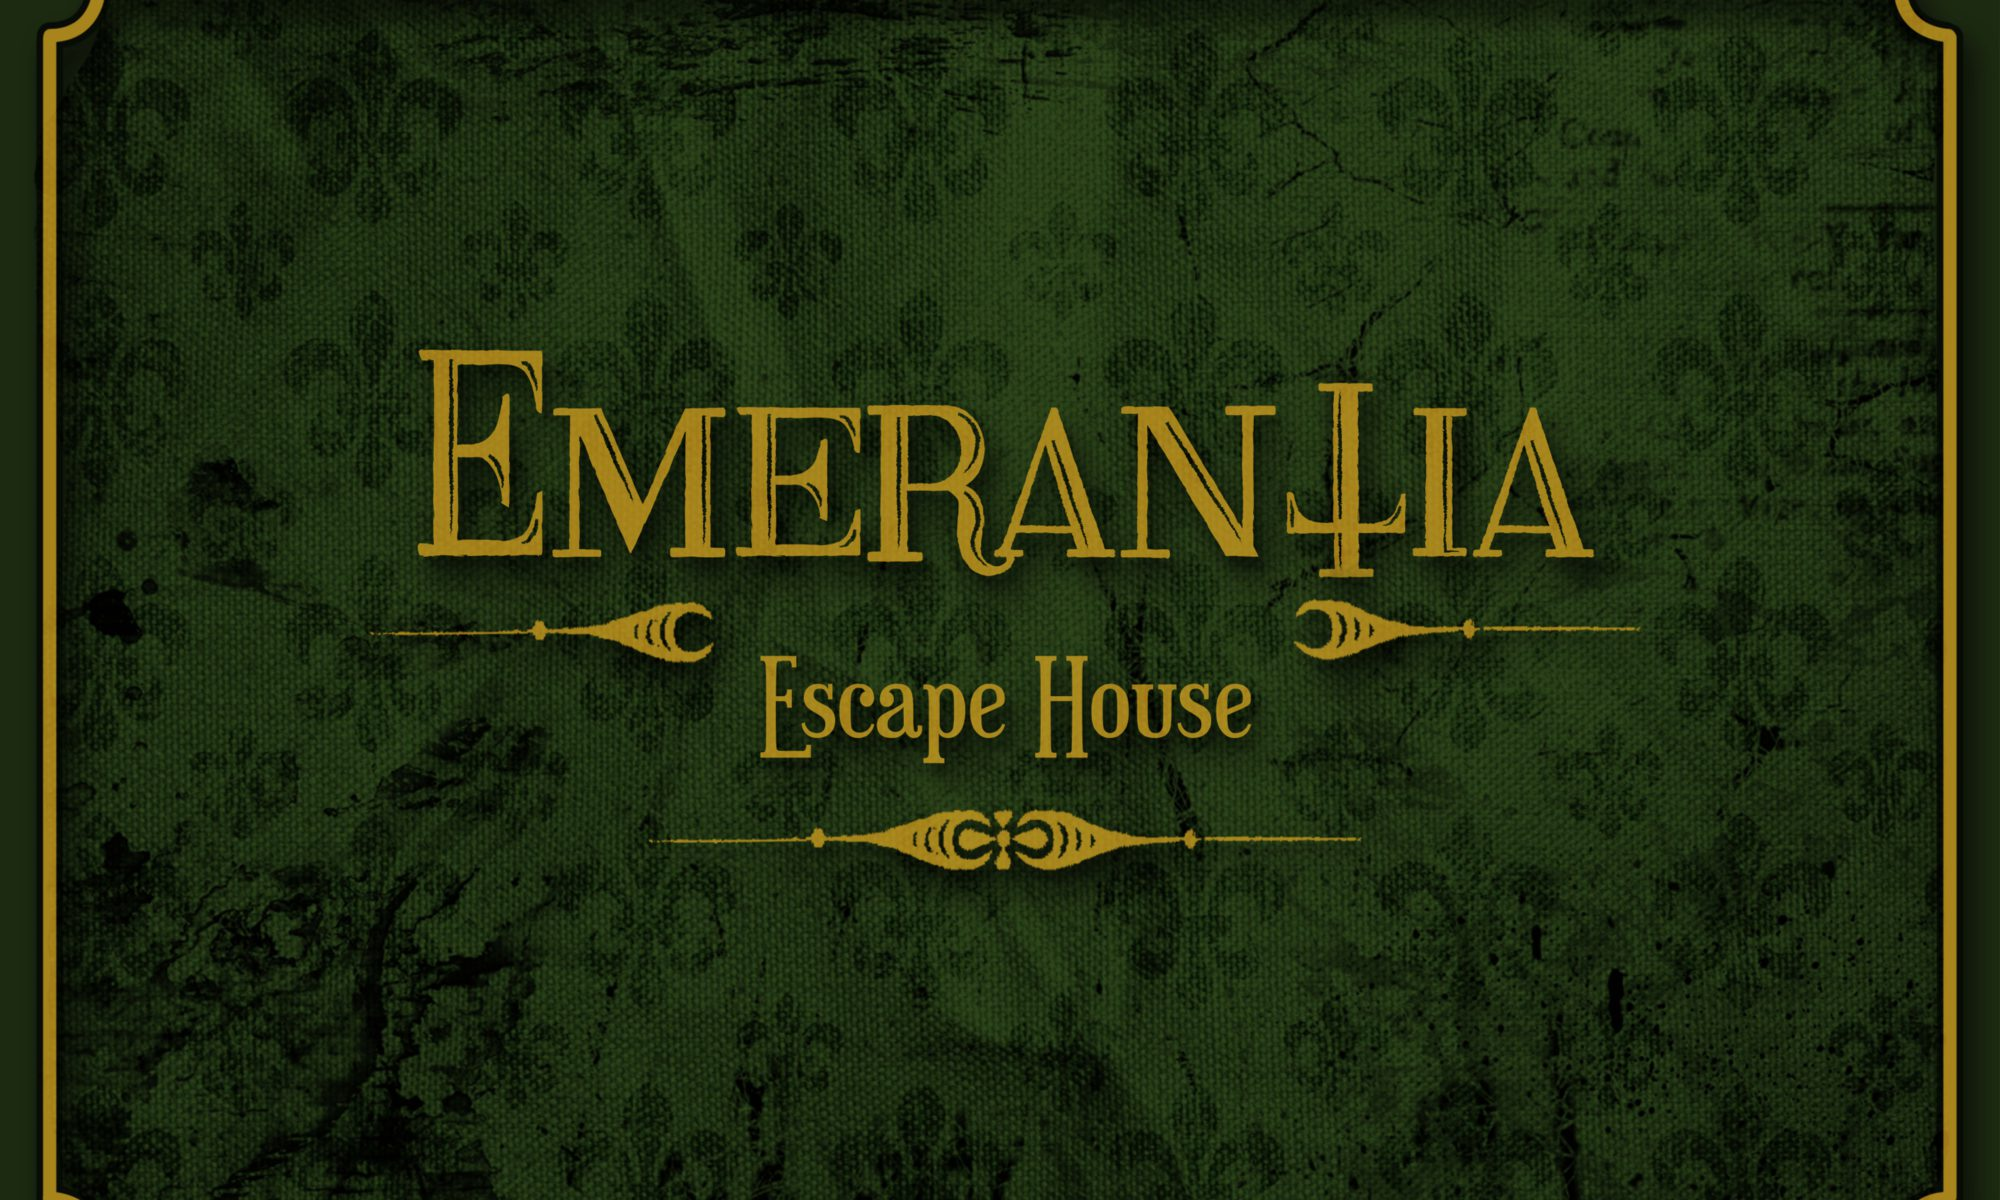 Escapehouse Emerantia